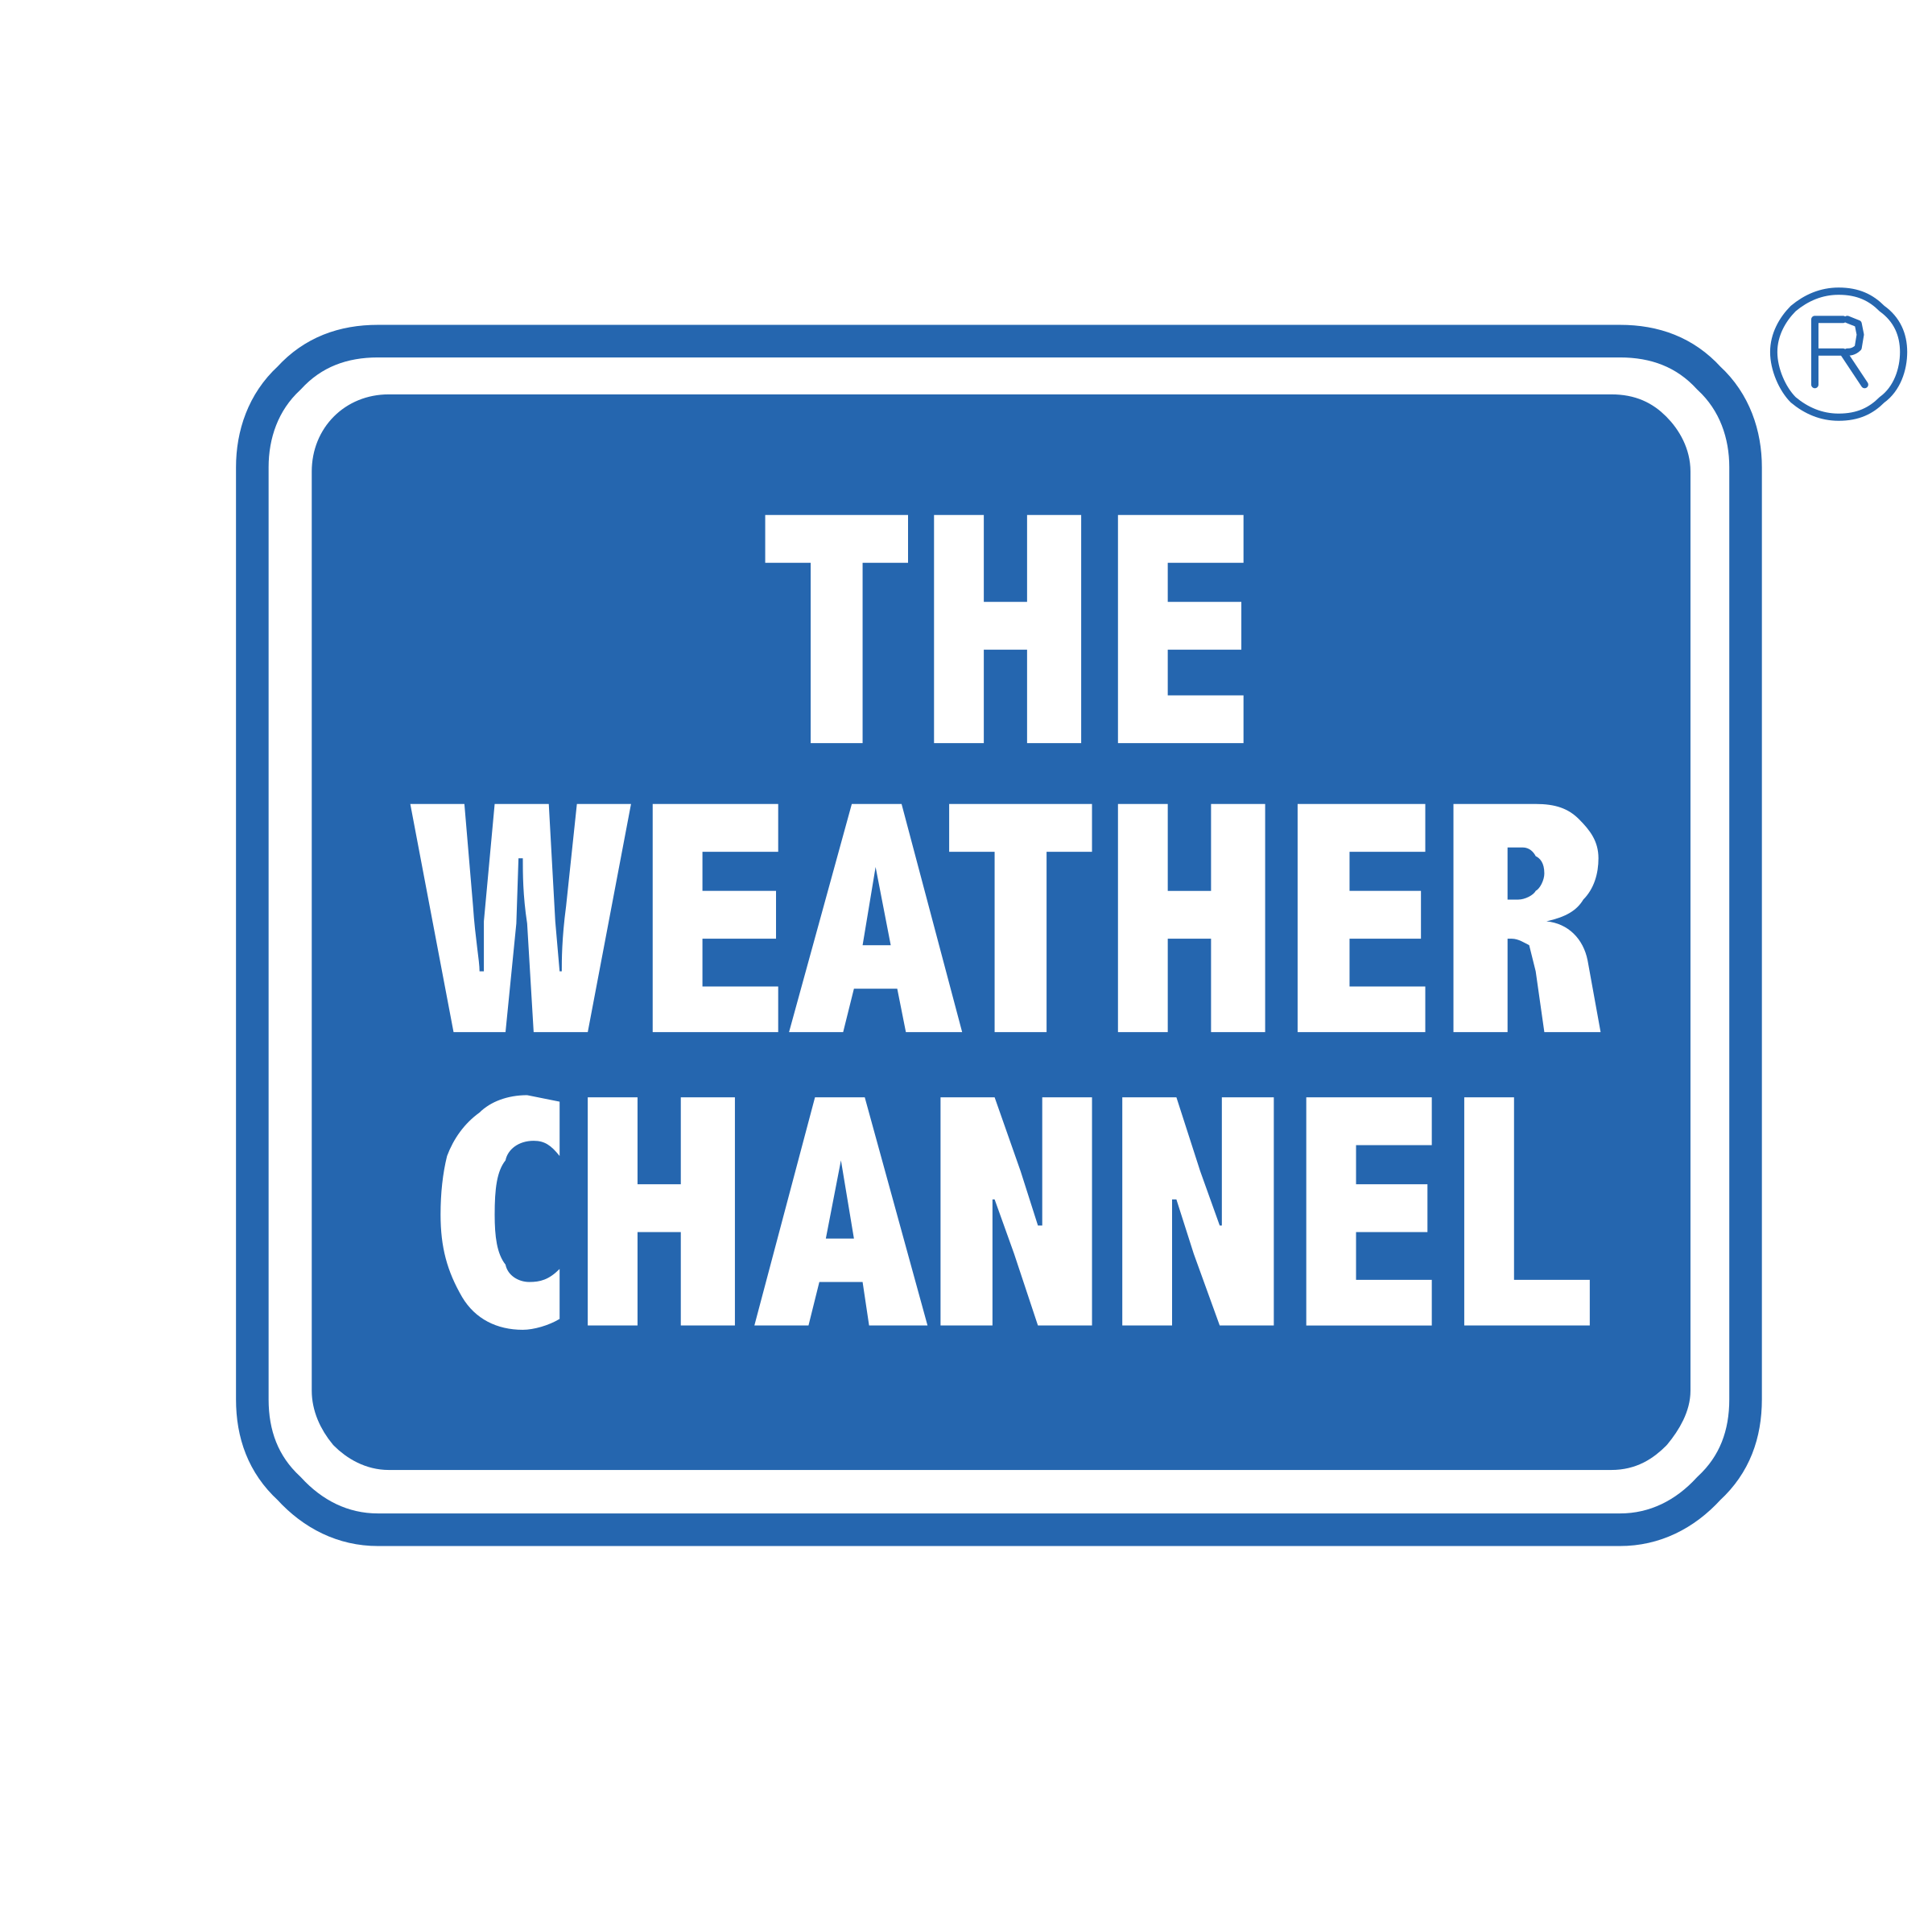 The Weather Channel Top News Stories of Today